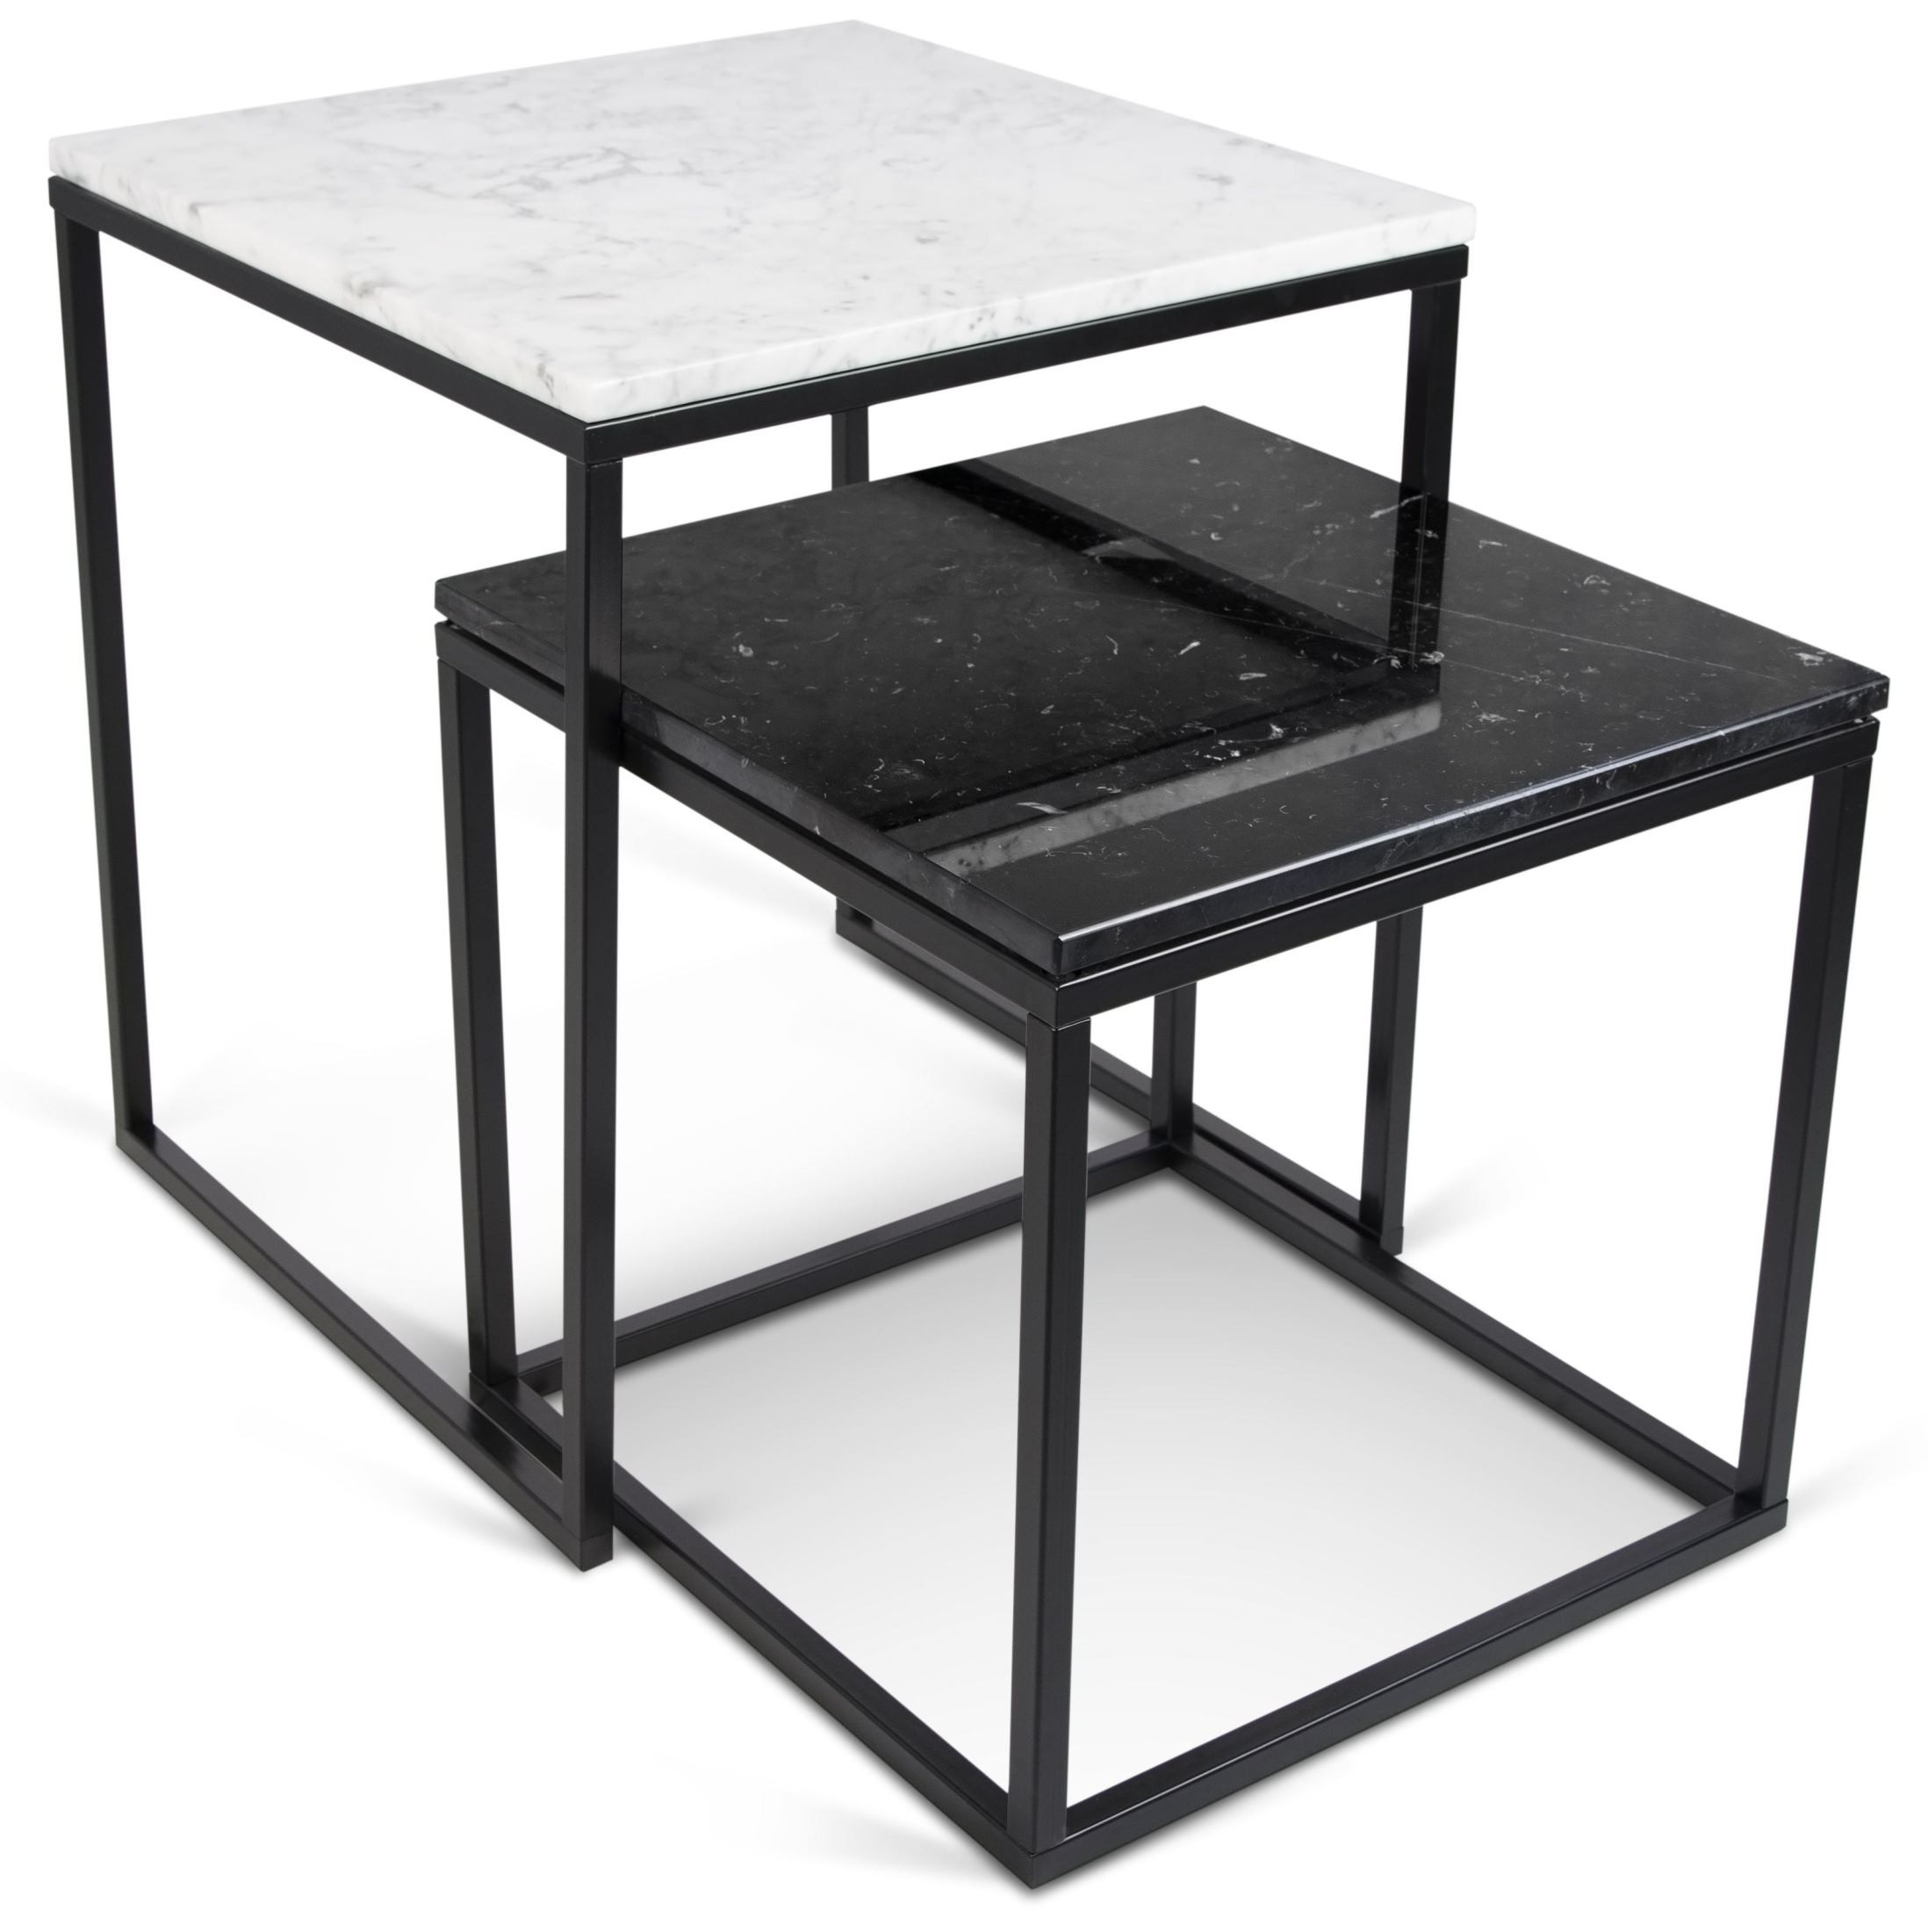 Prairie White Marble Top Nesting Tables From Tema Home